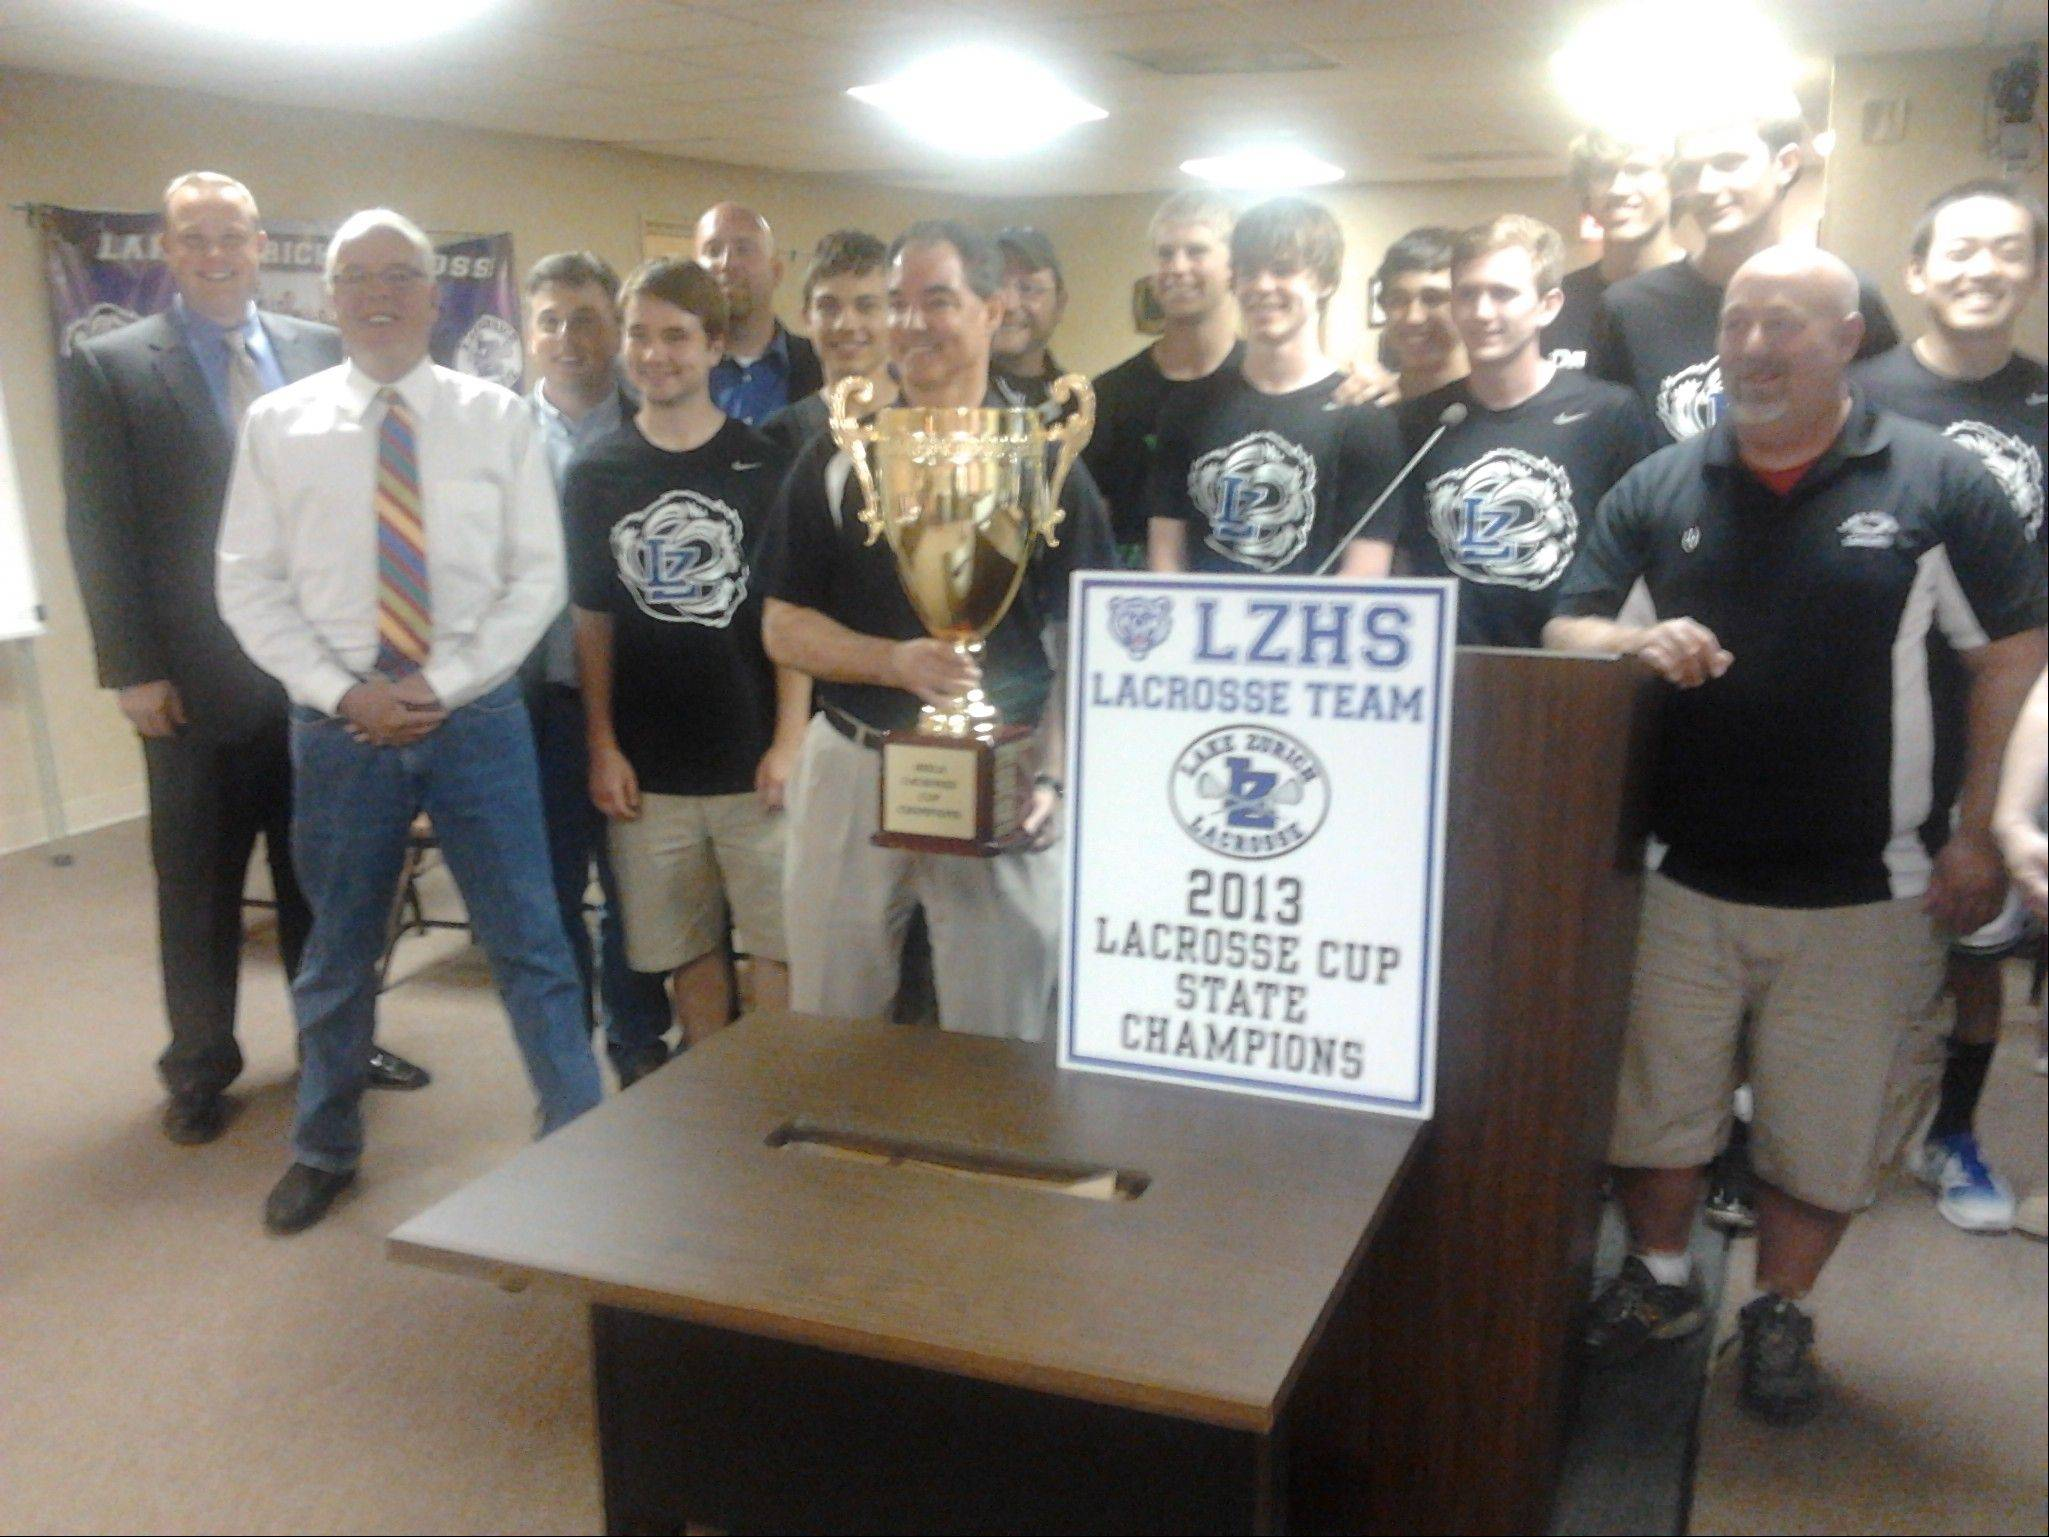 Lake Zurich Mayor Thomas Poynton (far left, in white shirt) joins Lake Zurich High School players and coaches Monday with the state championship trophy they won earlier this month. Poynton earlier read a village proclamation congratulating the team on its accomplishment.